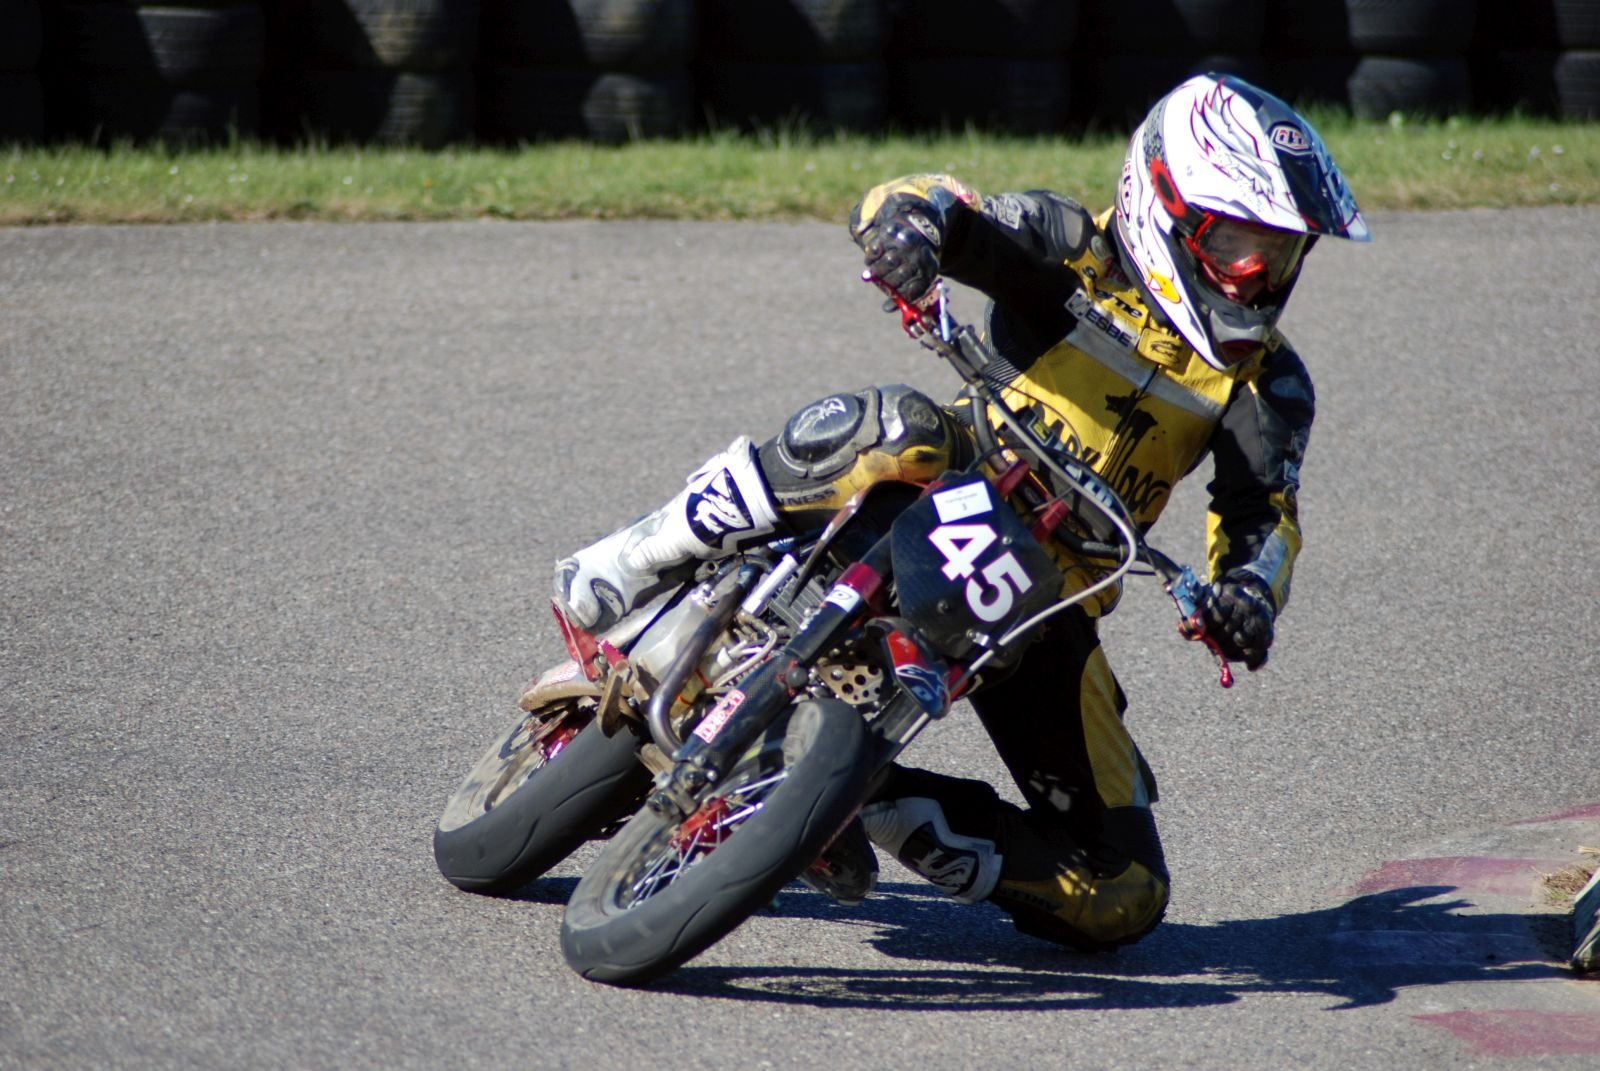 Supermotard_DM_ALS_2009 (14)